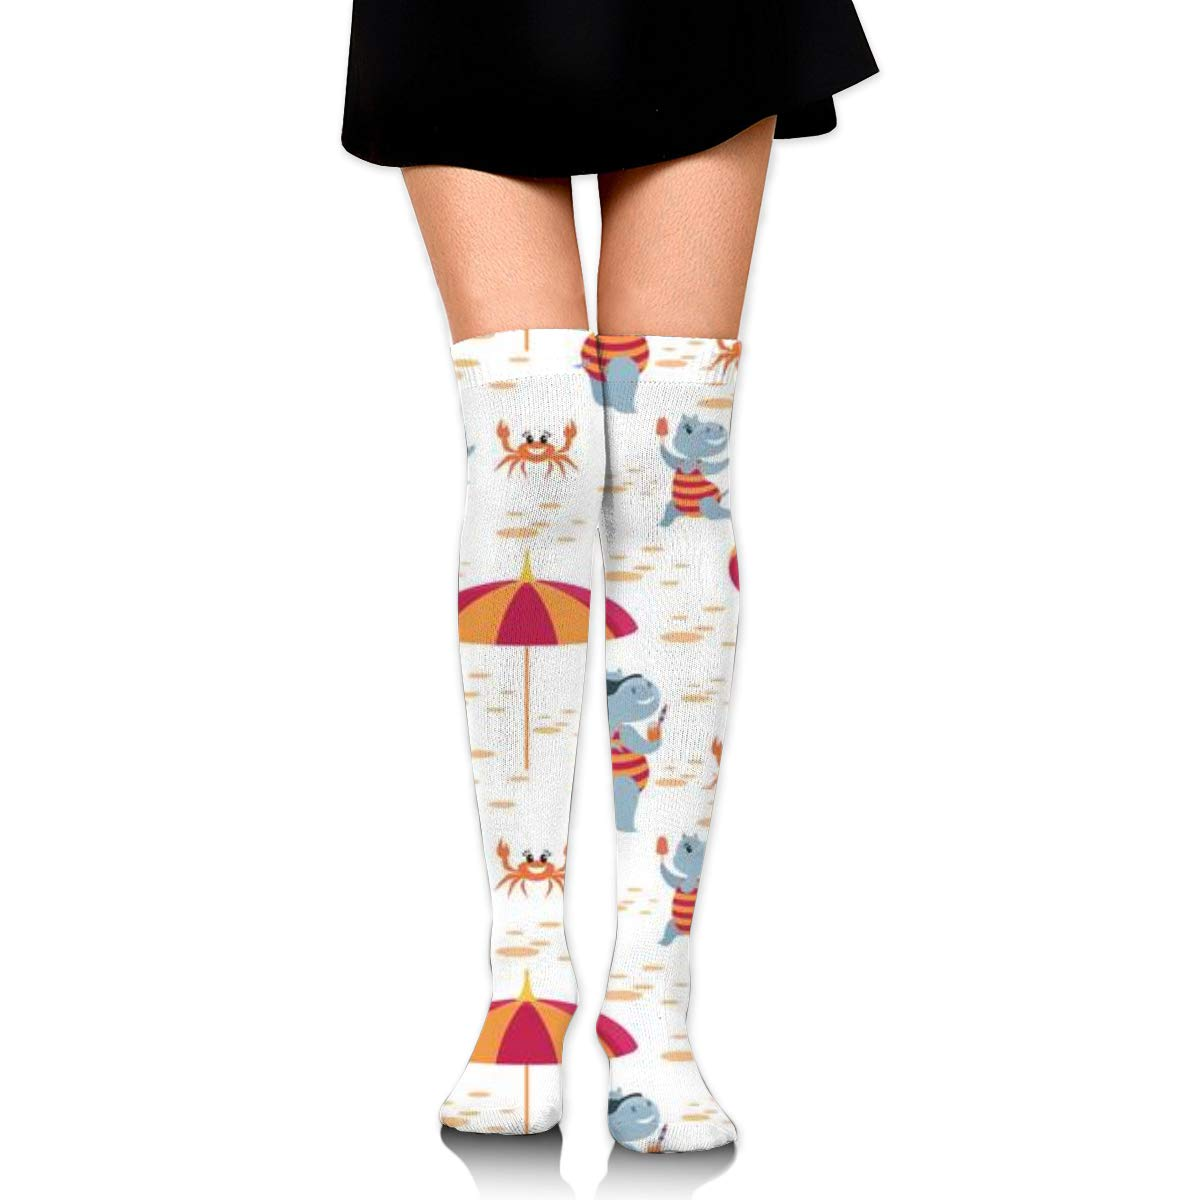 Knee High Socks Fun Hippos Vacation A White 23.6 Inch Compression Sock Stockings For Women Girls